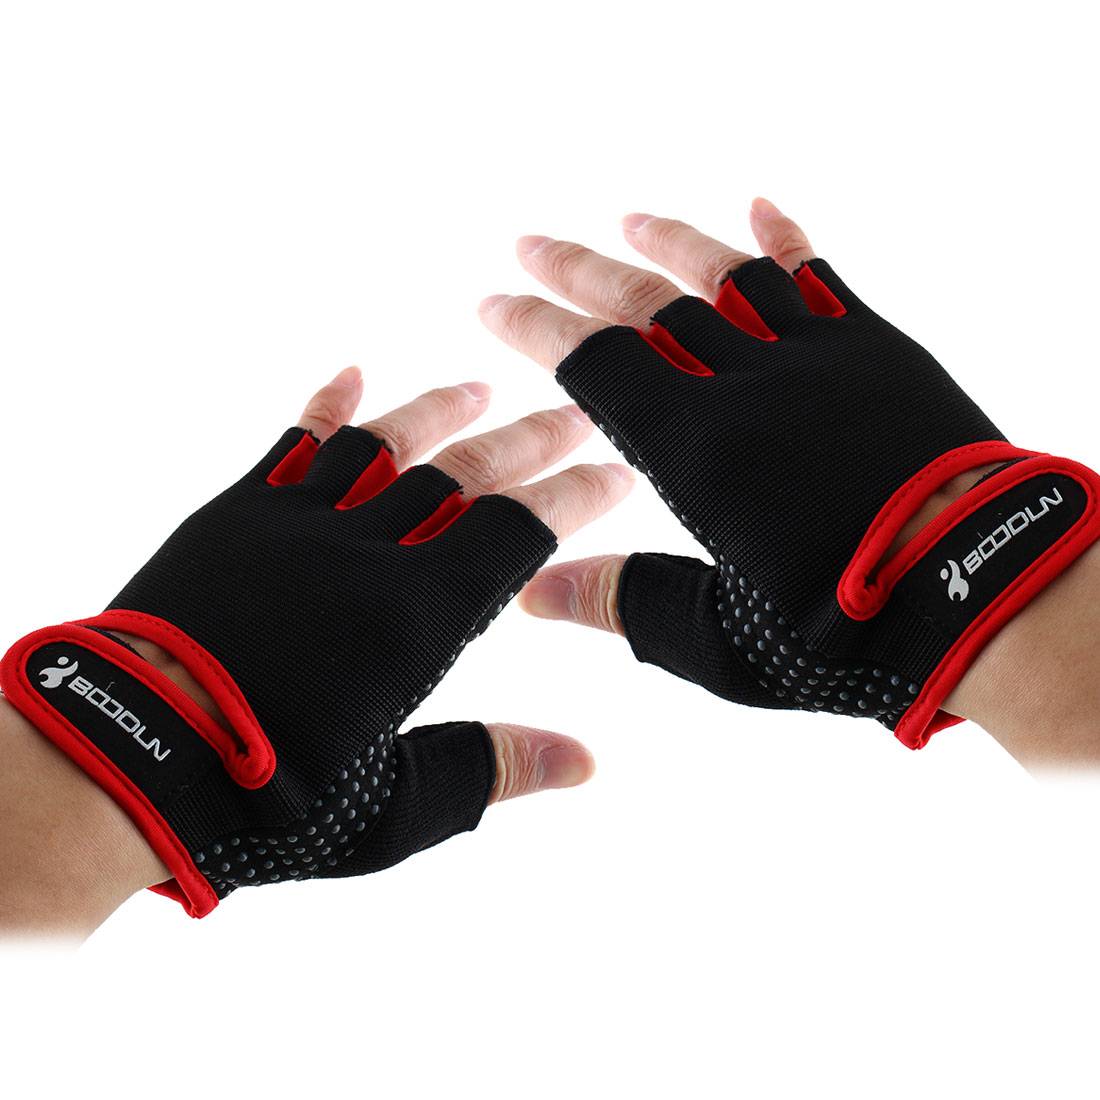 BOODUN Authorized Adult Unisex Spandex Adjustable Sports Training Workout Mittens Fitness Gloves Red L Pair